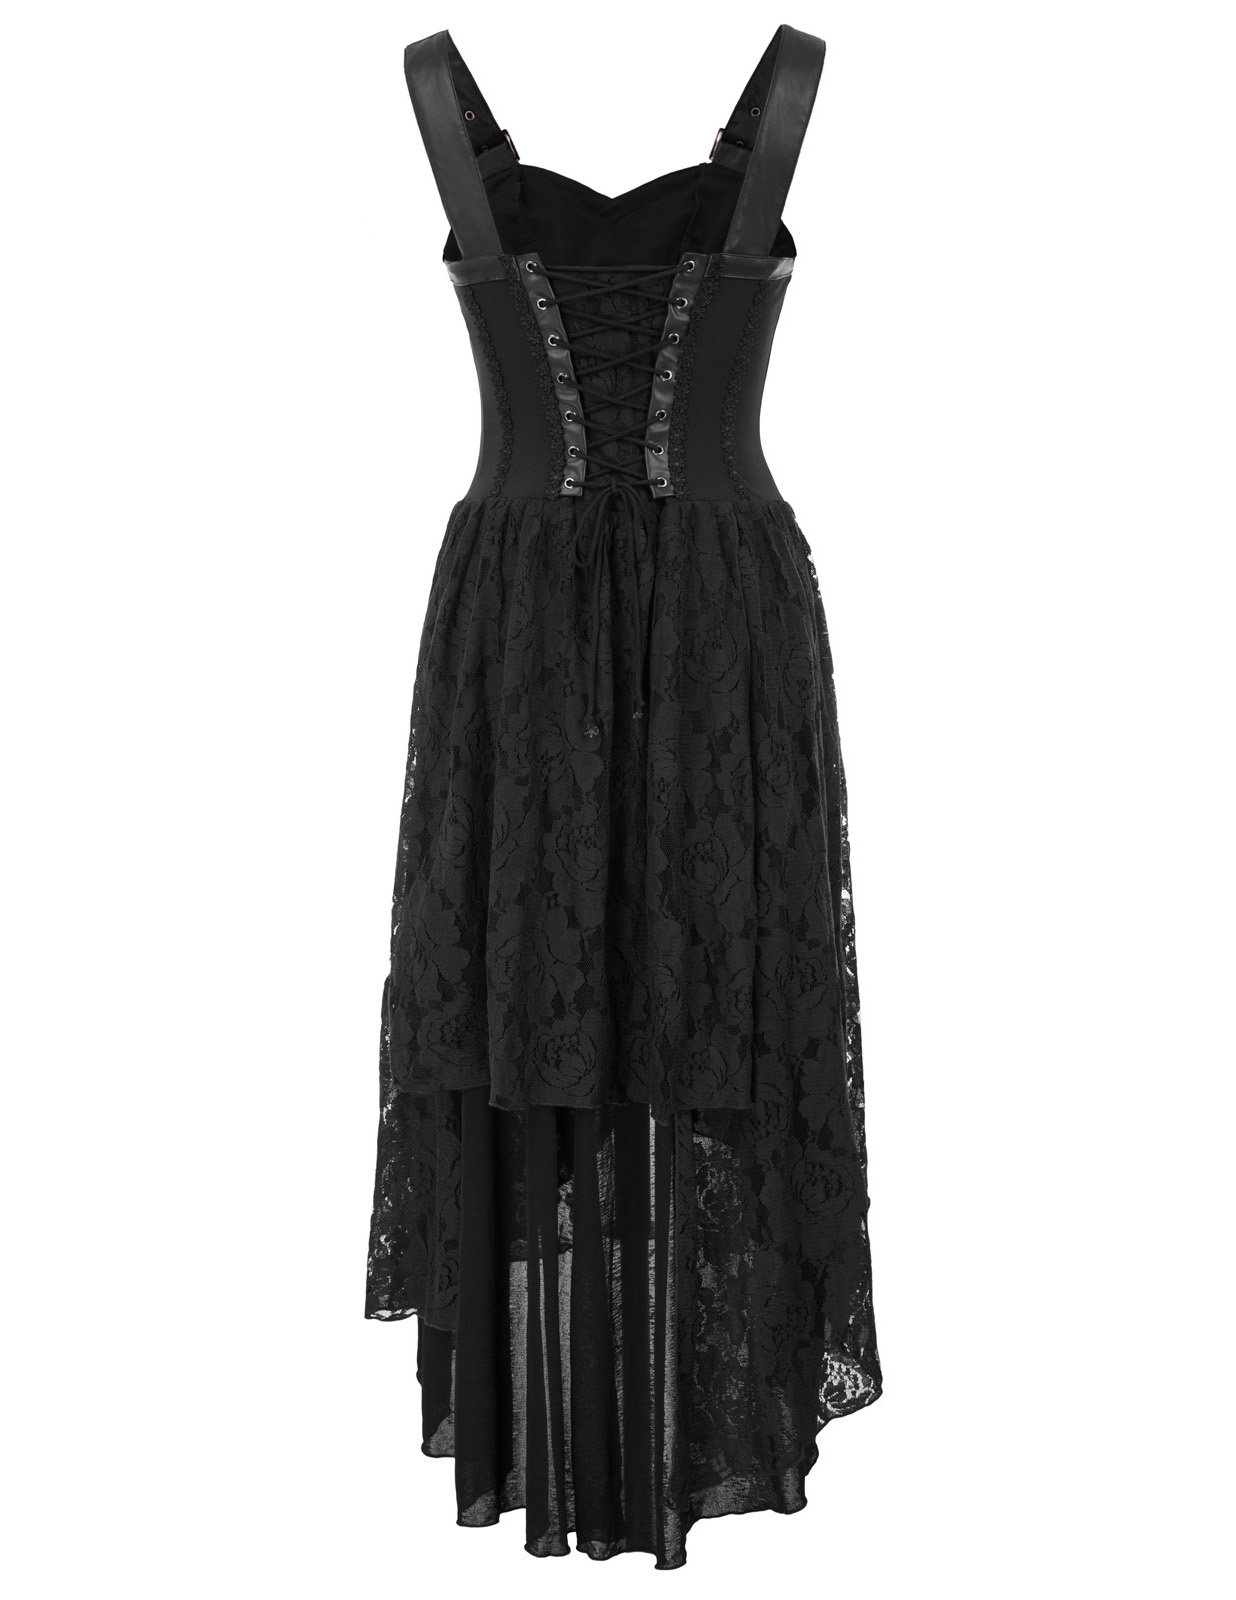 Women Steampunk Gothic Victorian Long Dress Sleeveless Irregular Lace Dress 4